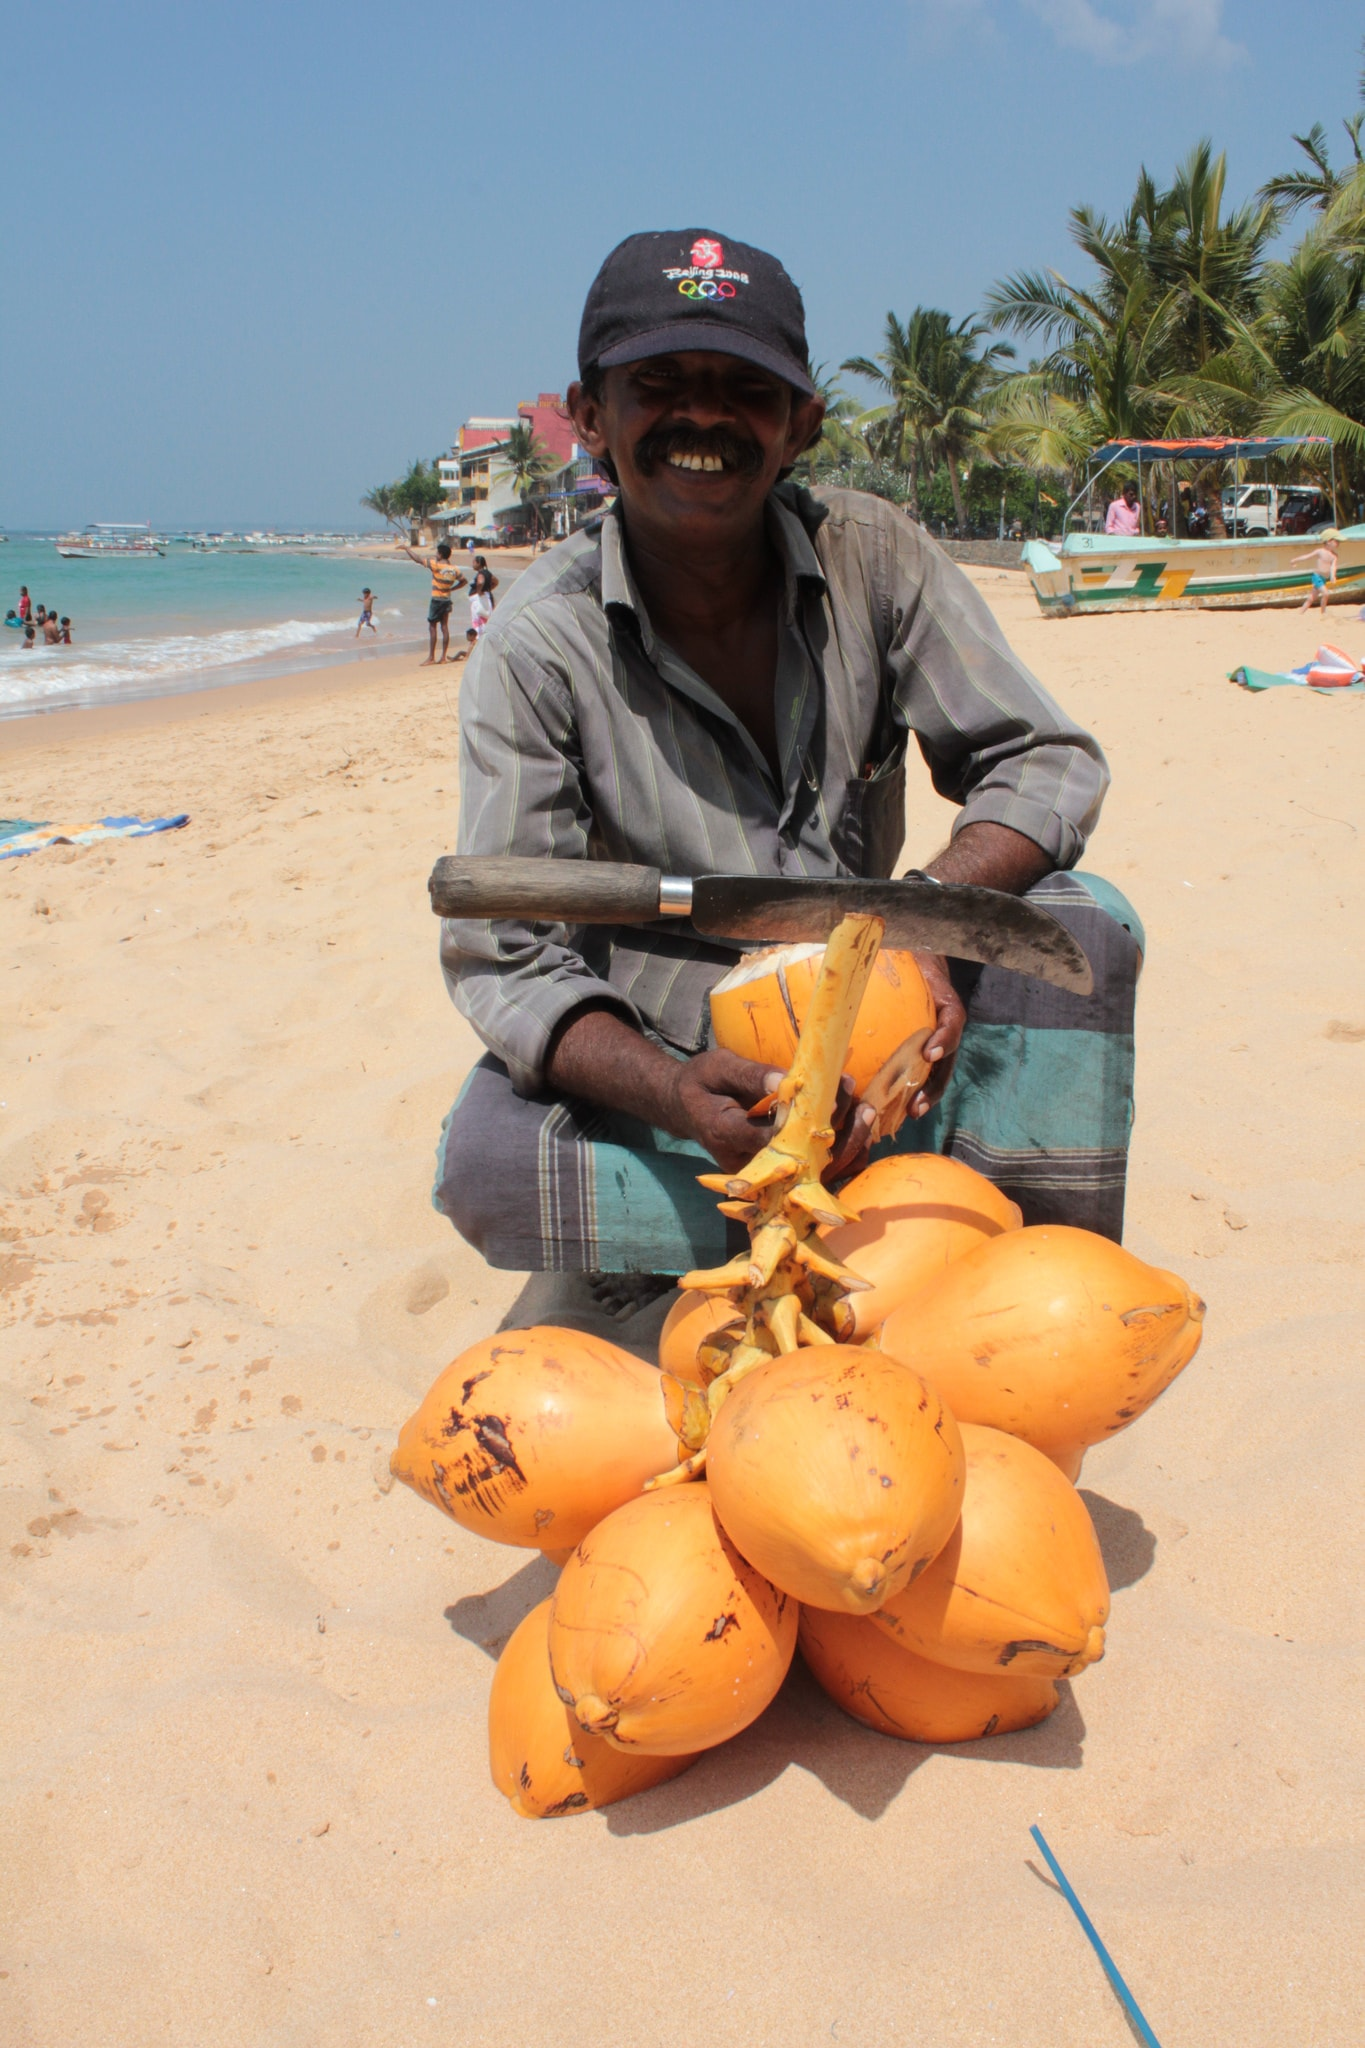 King Coconut Seller, Hikkaduwa Beach © Melissa / Flickr